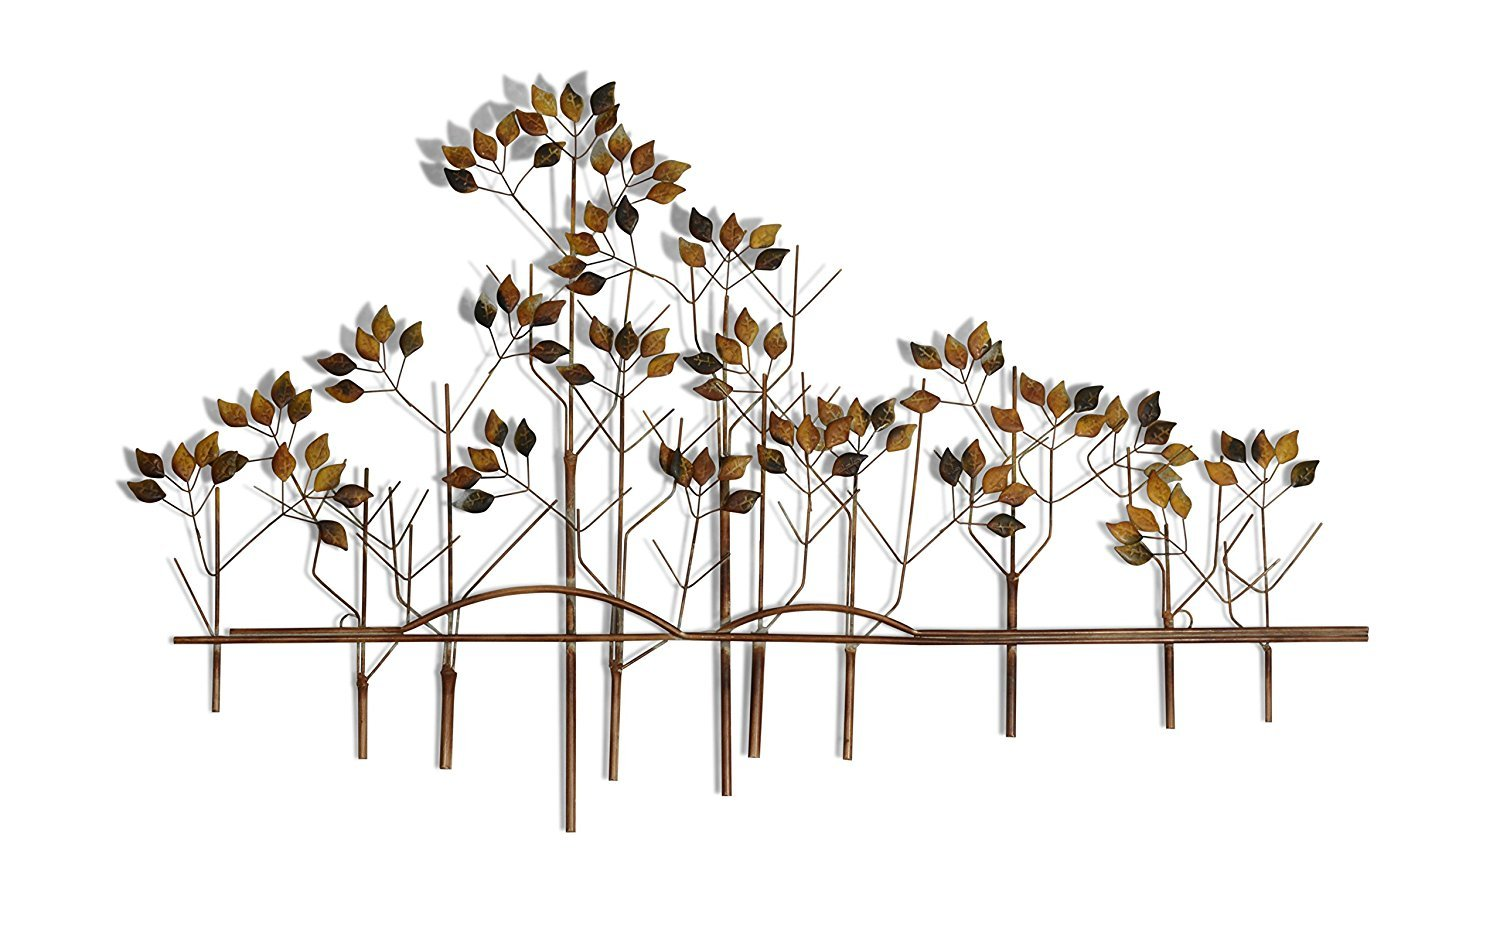 39 Inches Wide x 24 Inches High Metal Wall Art Tree of Life Metal Wall Sculpture